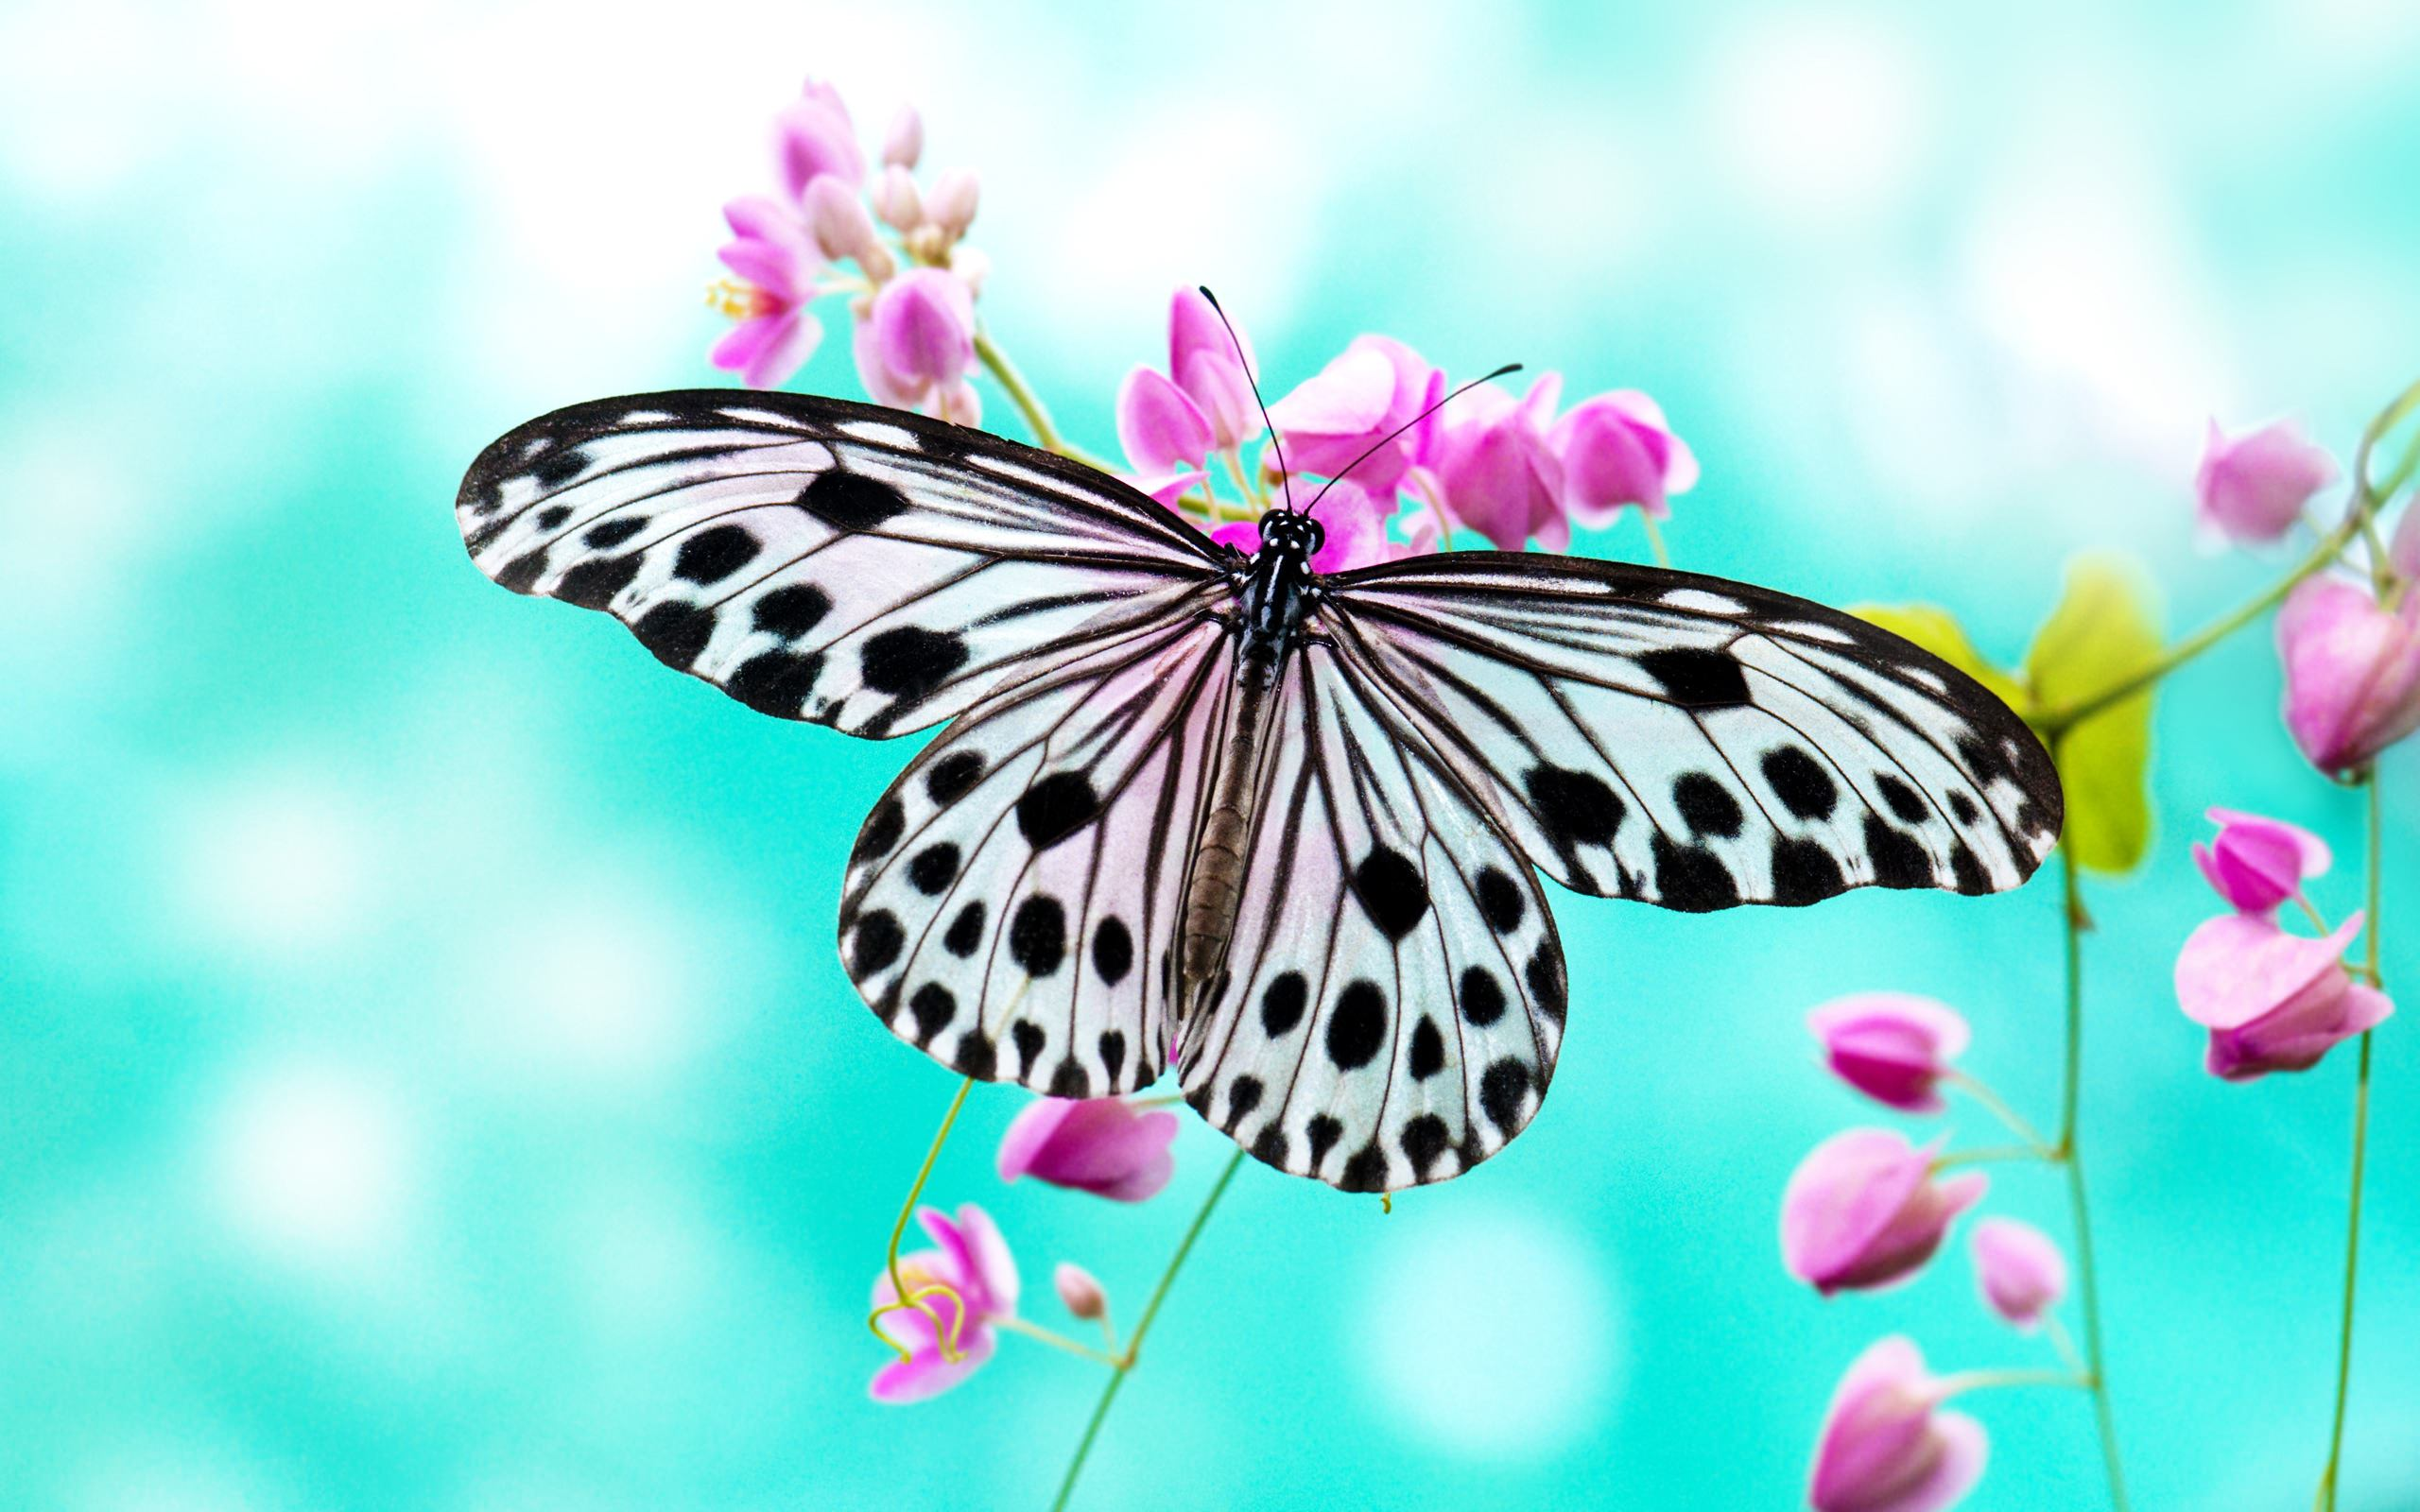 Marvellous Butterfly Wallpaper